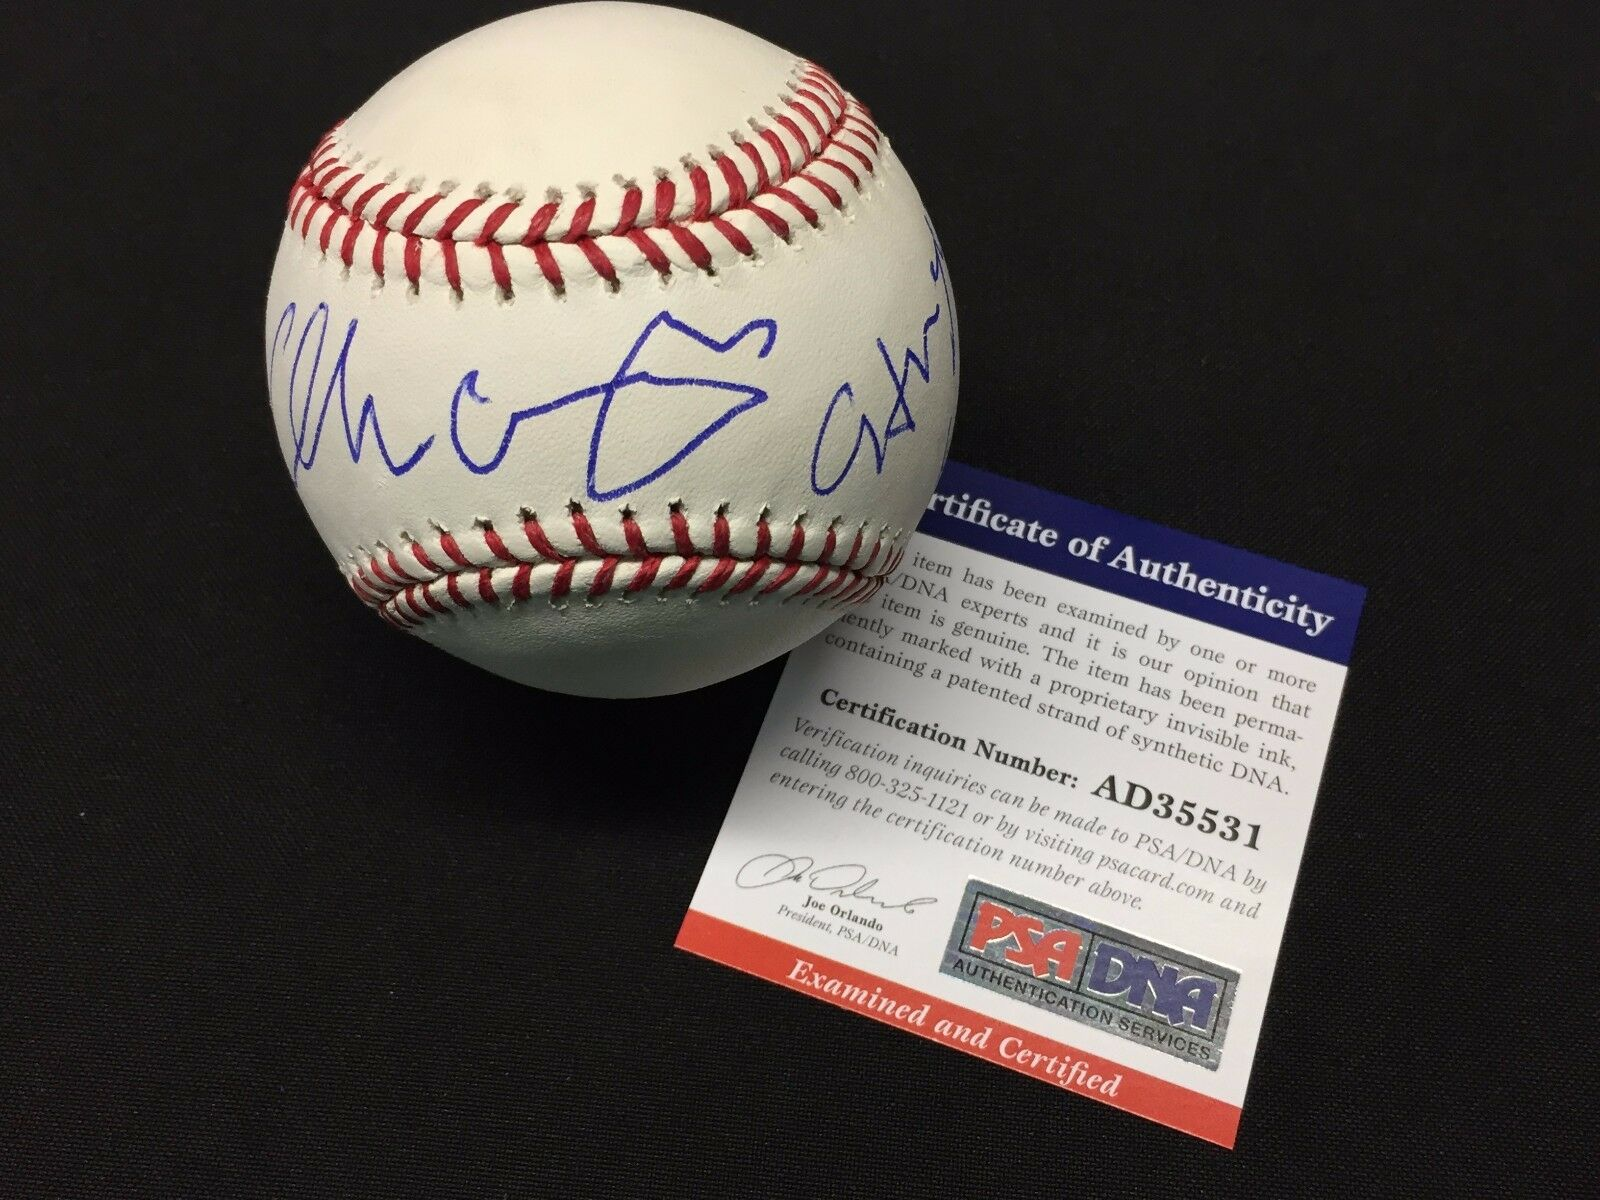 George Lopez Signed Major League Baseball MLB *Comedian PSA AD35531